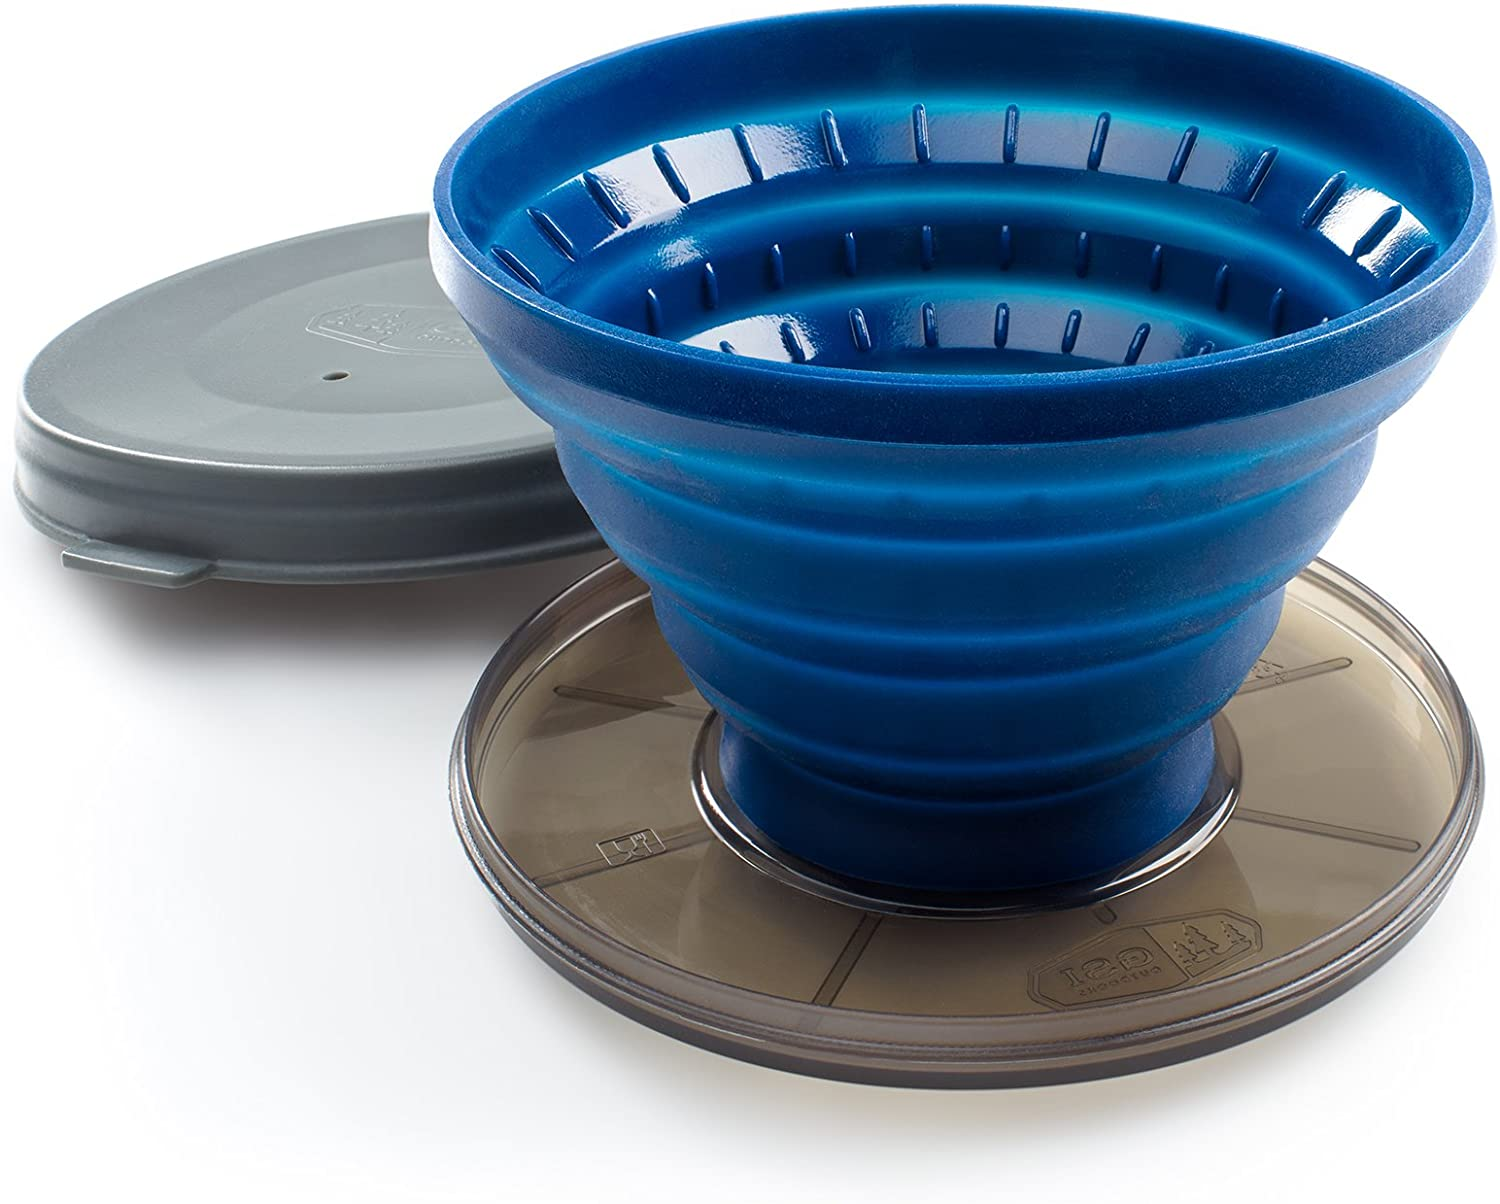 Image of a blue, collapsible coffee dripper with lid.